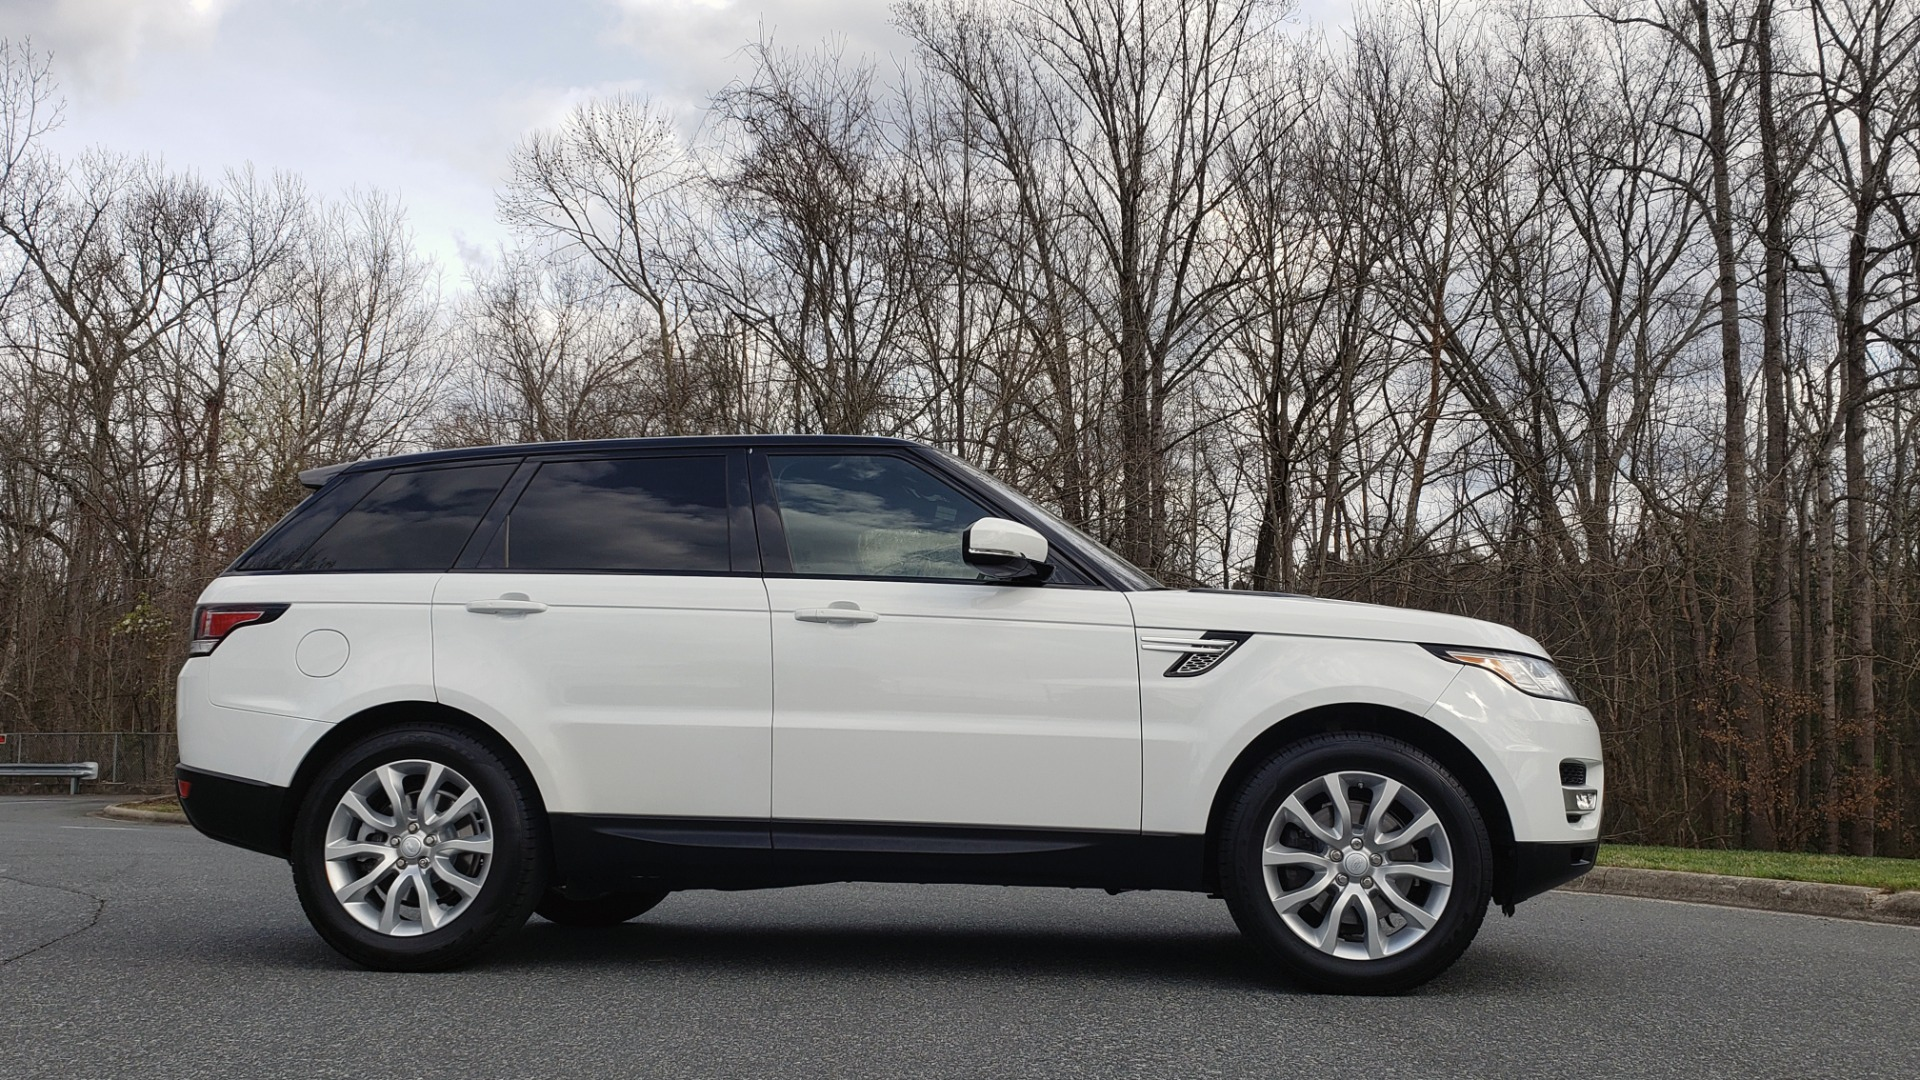 Used 2016 Land Rover RANGE ROVER SPORT V6 HSE 4WD / NAV / SUNROOF / MERIDIAN / REARVIEW for sale Sold at Formula Imports in Charlotte NC 28227 5